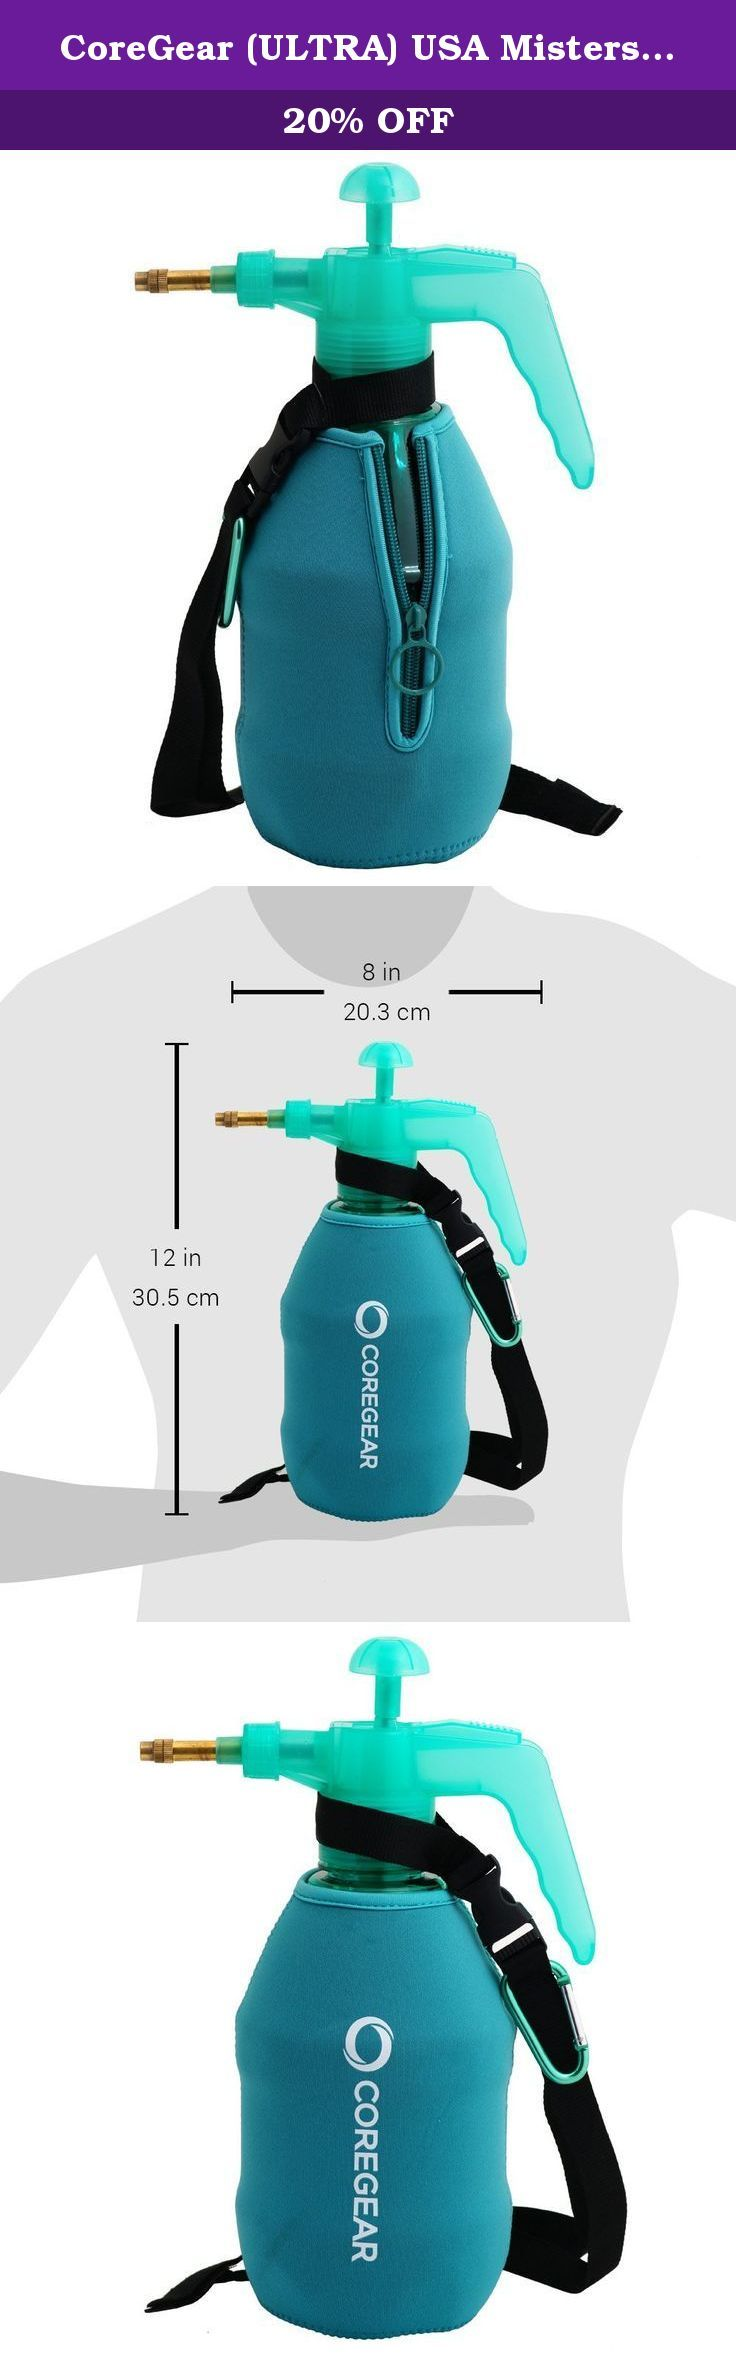 """CoreGear (ULTRA) USA Misters 1.5 Liter Personal Pump Water Mister & Sprayer With Full Neoprene Jacket (Teal). CoreGear 